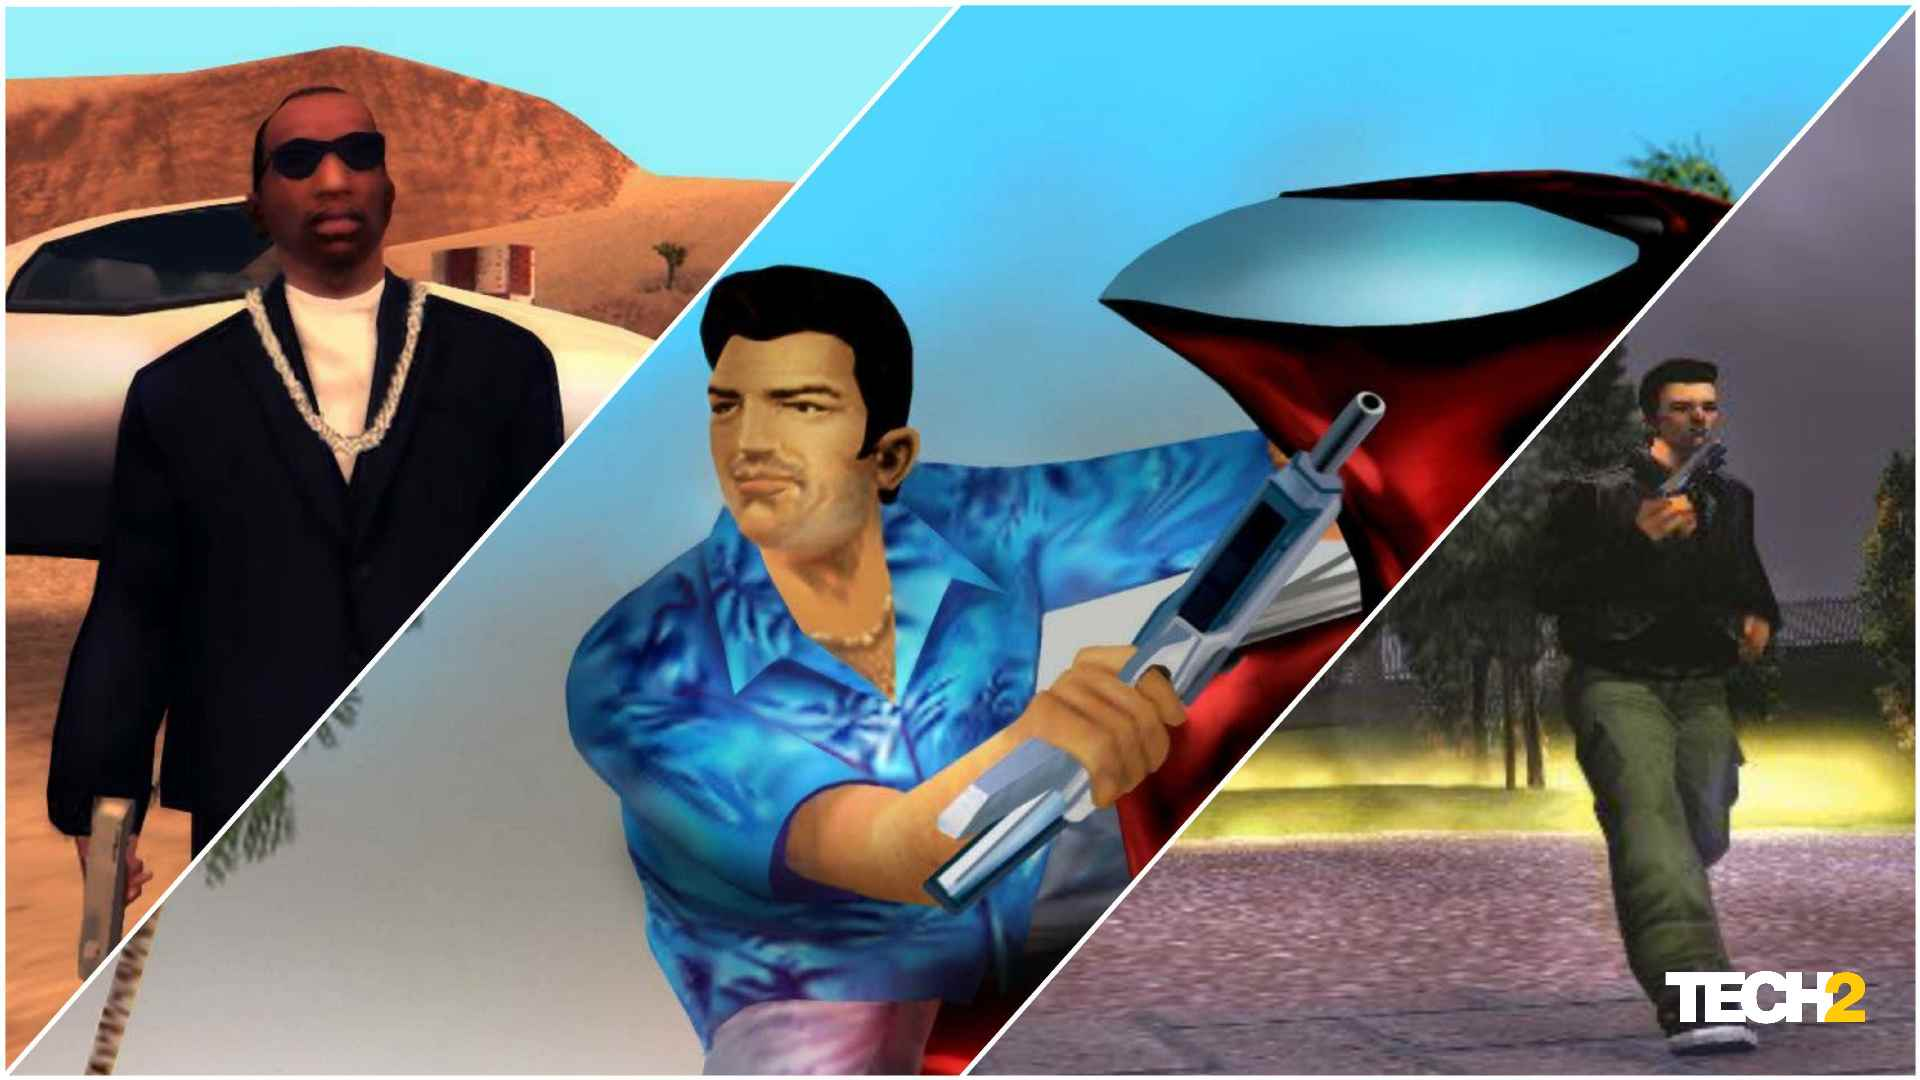 Remasters of the iconic GTA games will retain the look and feel of the original titles. Image: Tech2/Amaan Ahmed